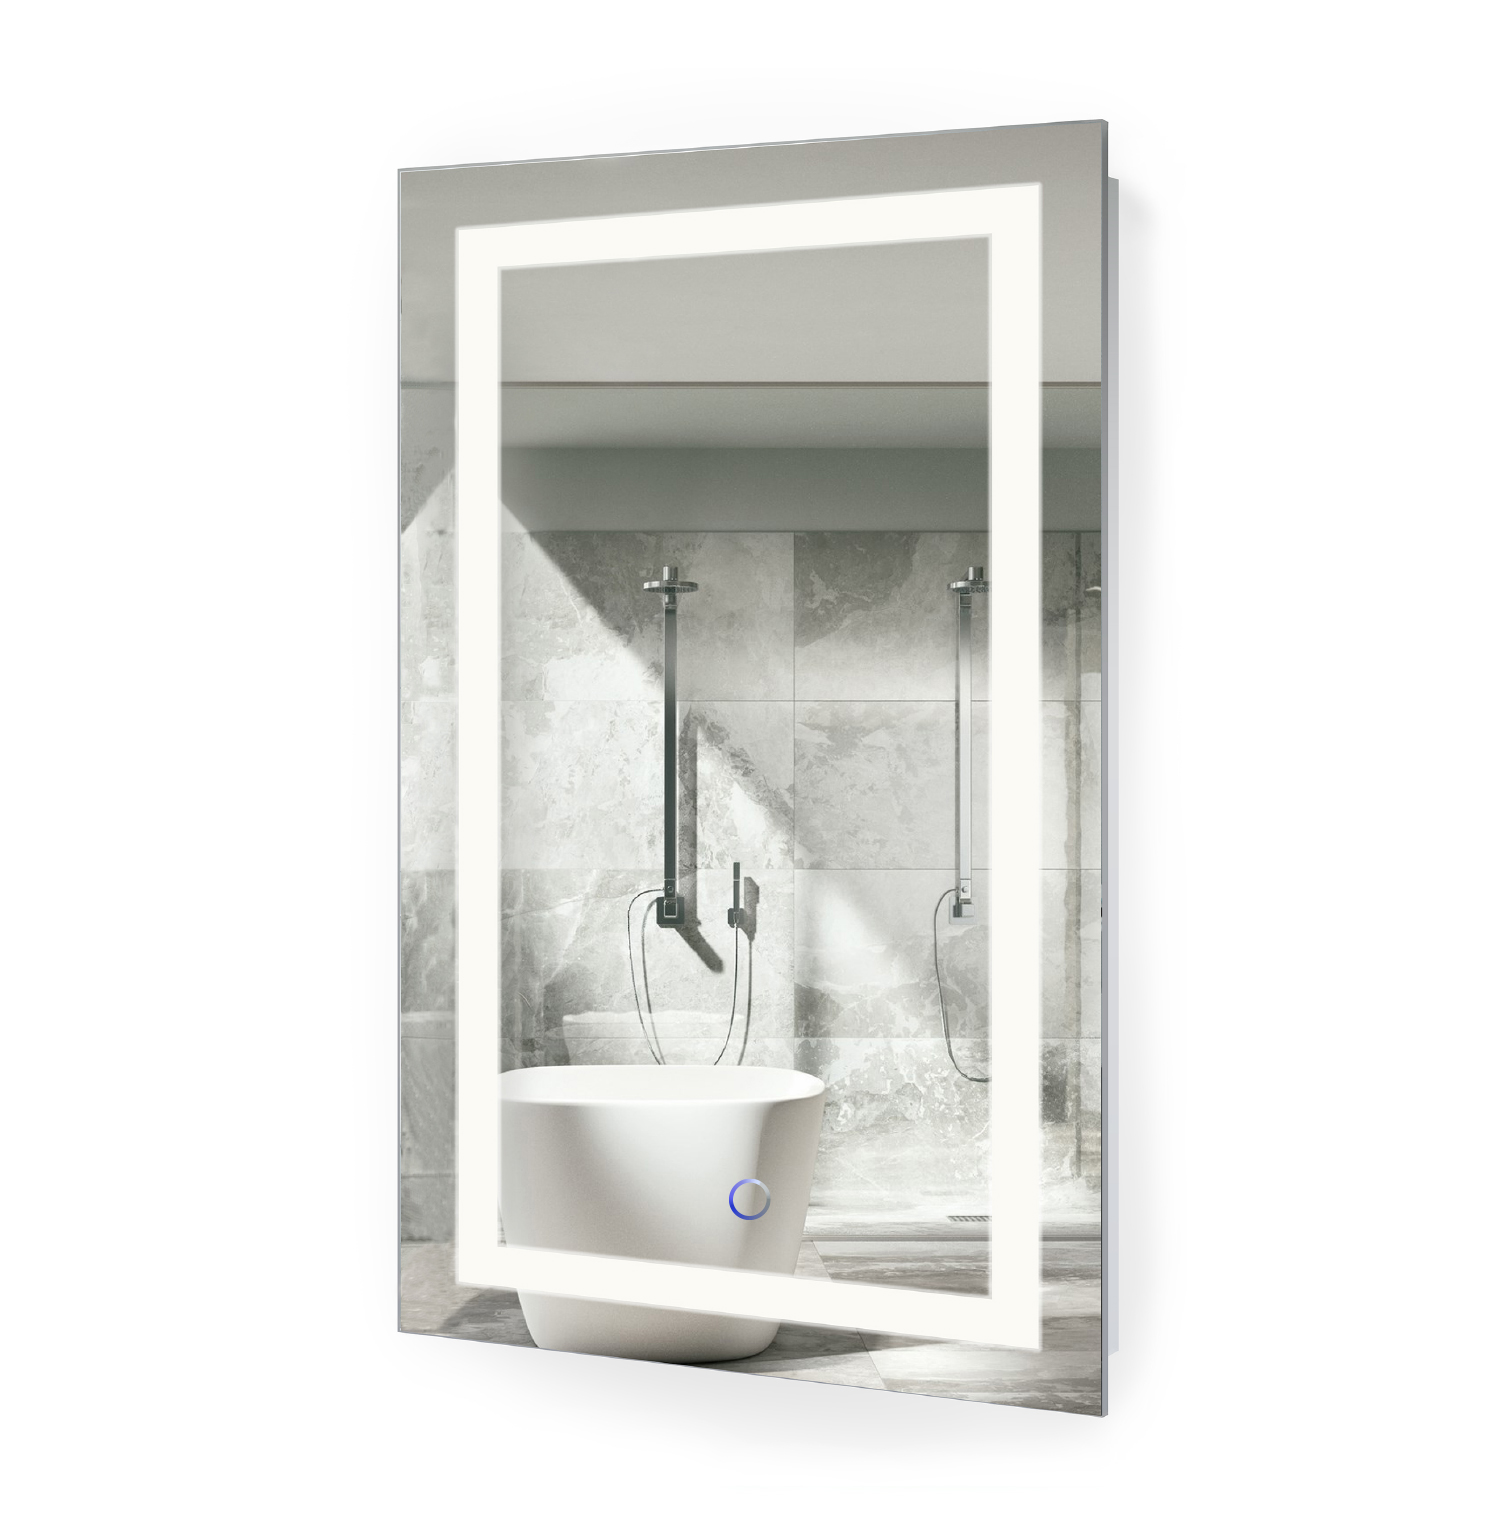 Icon 18″ x 30″ LED Bathroom Mirror w/ Dimmer & Defogger | Lighted Vanity Mirror